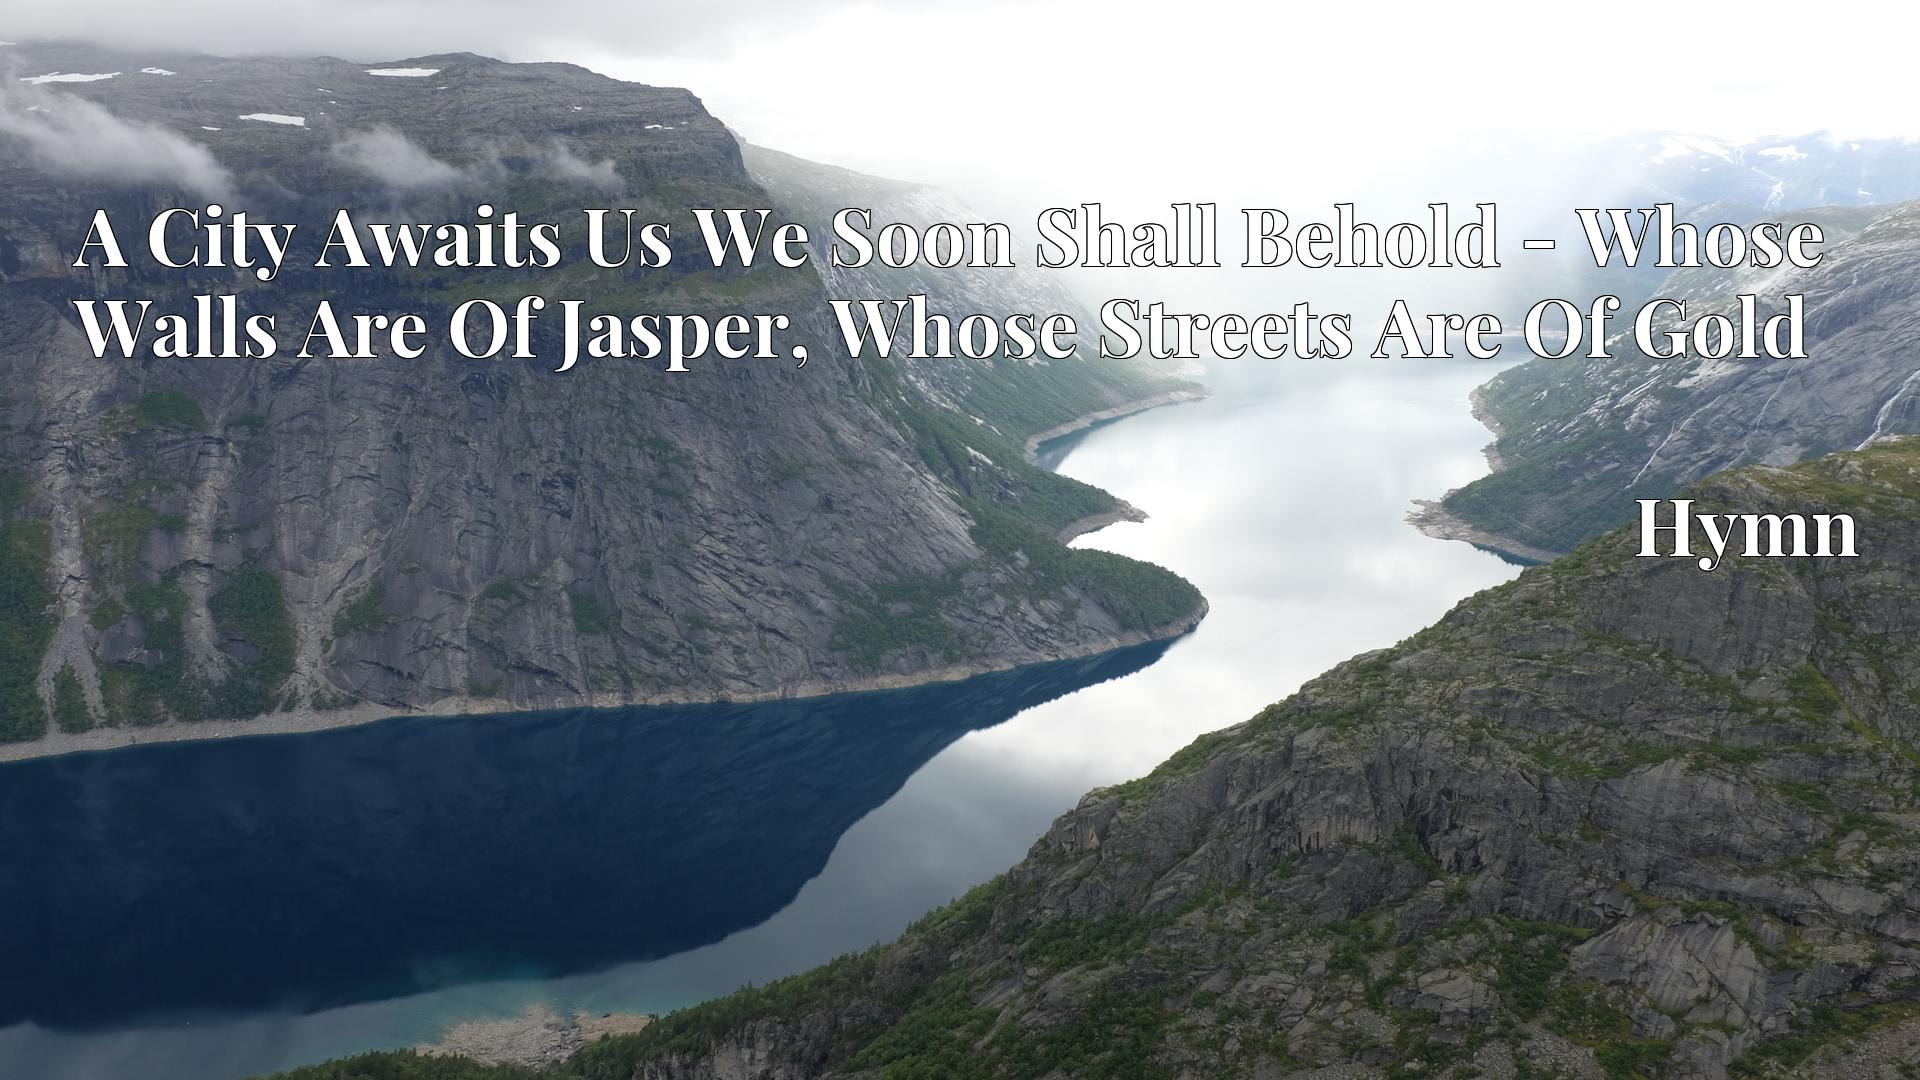 A City Awaits Us We Soon Shall Behold - Whose Walls Are Of Jasper, Whose Streets Are Of Gold - Hymn